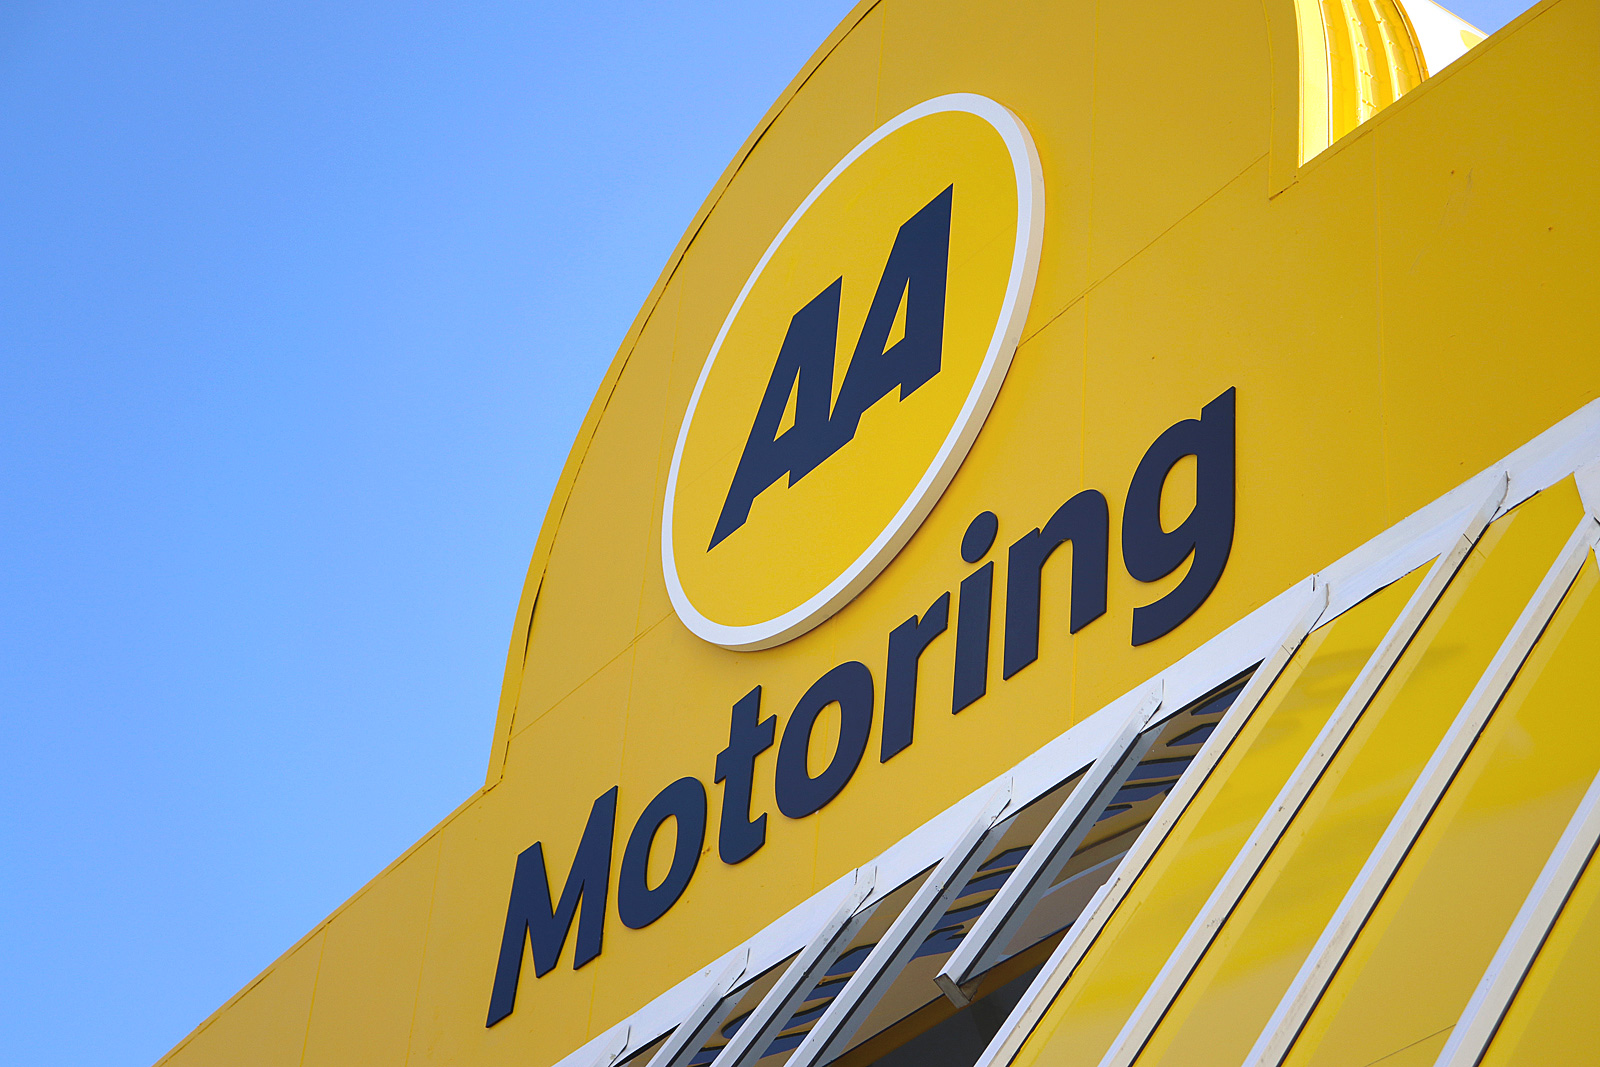 AA Motoring at Cavendish drive, Manukau. 3D sign and large fabricated circle installed.